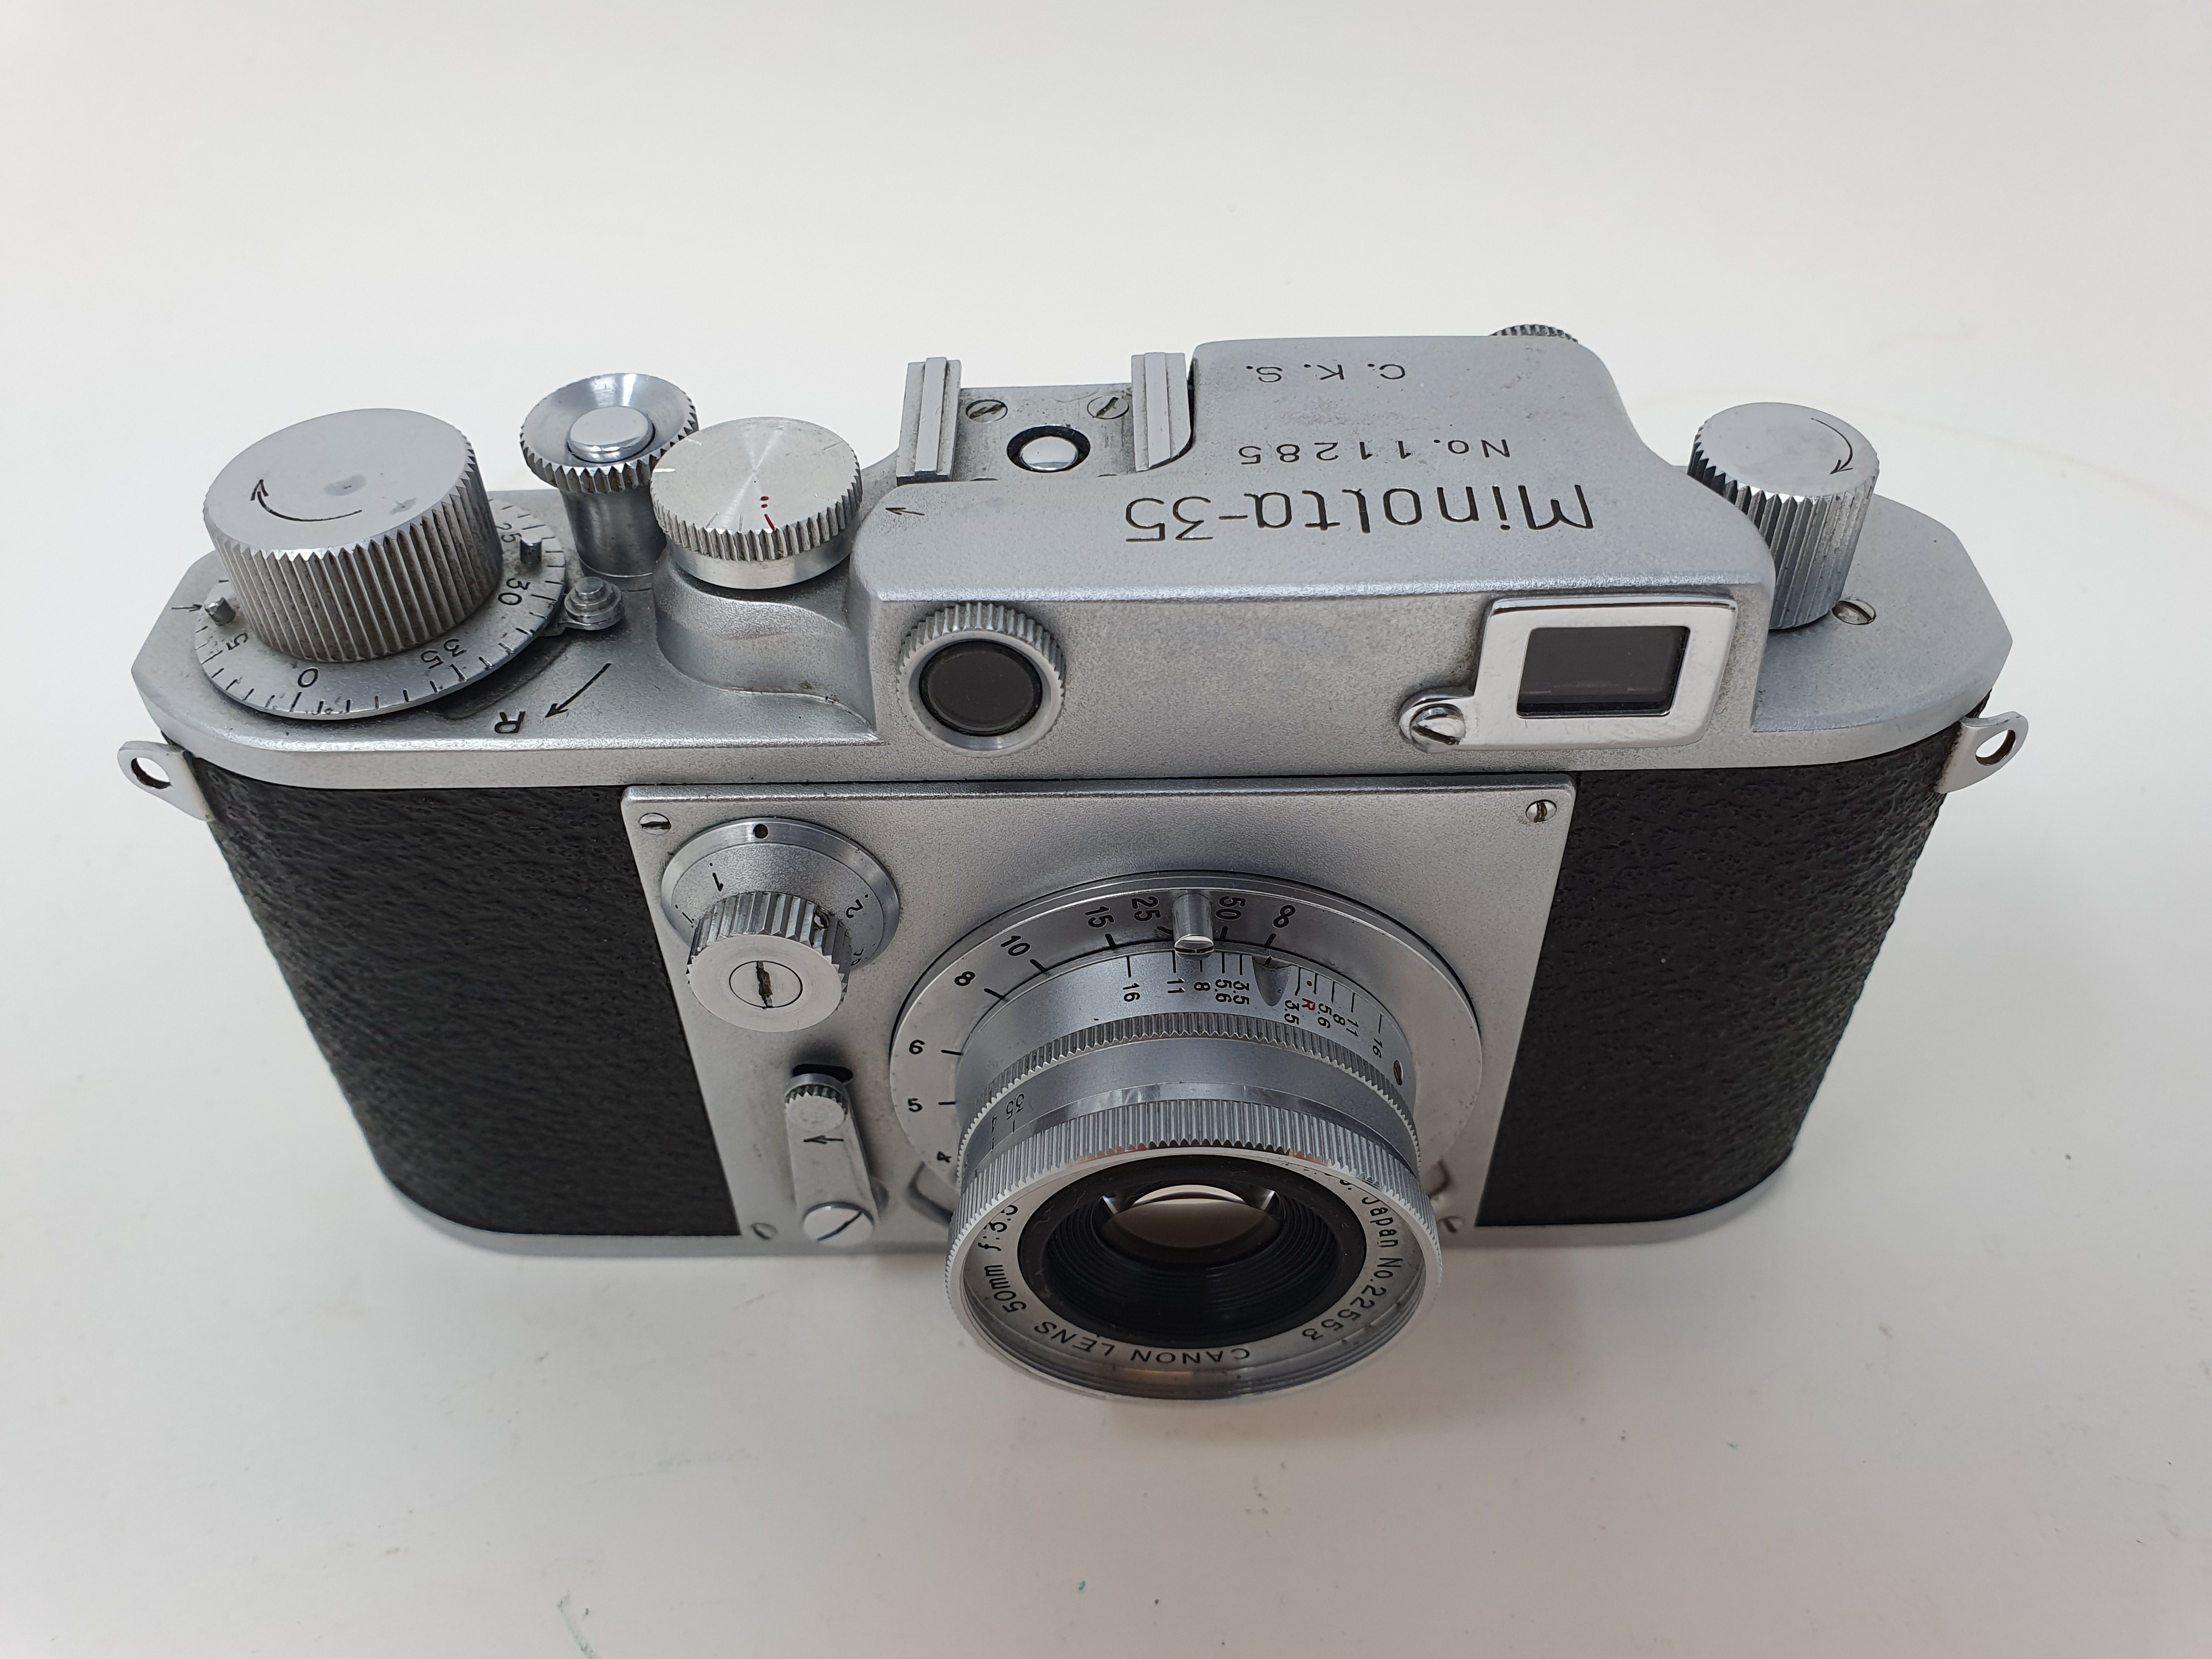 A Minolta-35, serial number 11285 Provenance: Part of a vast single owner collection of cameras, - Image 2 of 3